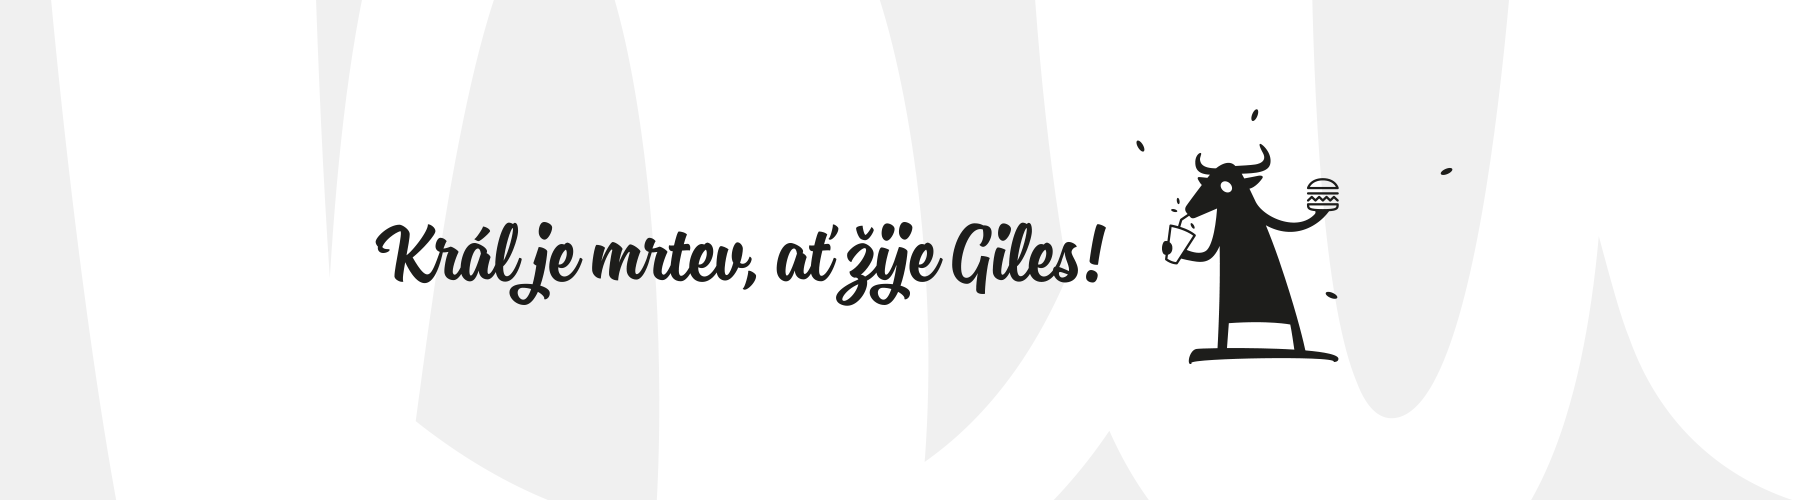 giles-t